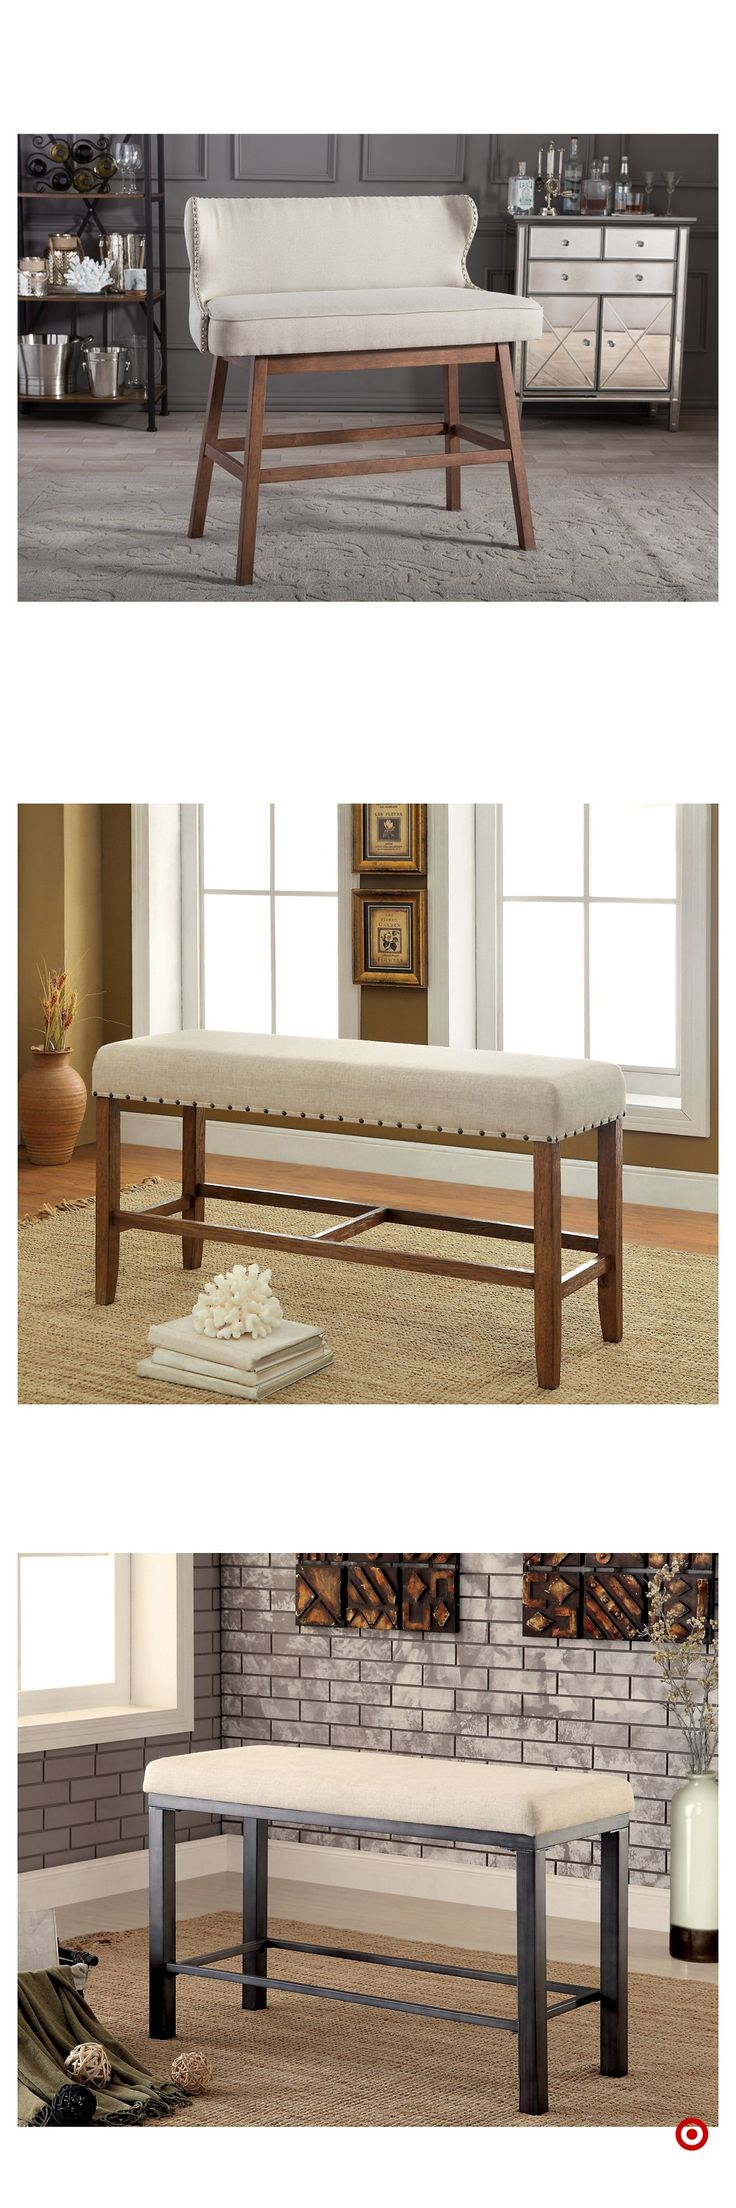 Shop Target for bar benches you will love at great low prices. Free shipping on all orders or free same-day pick-up in store.